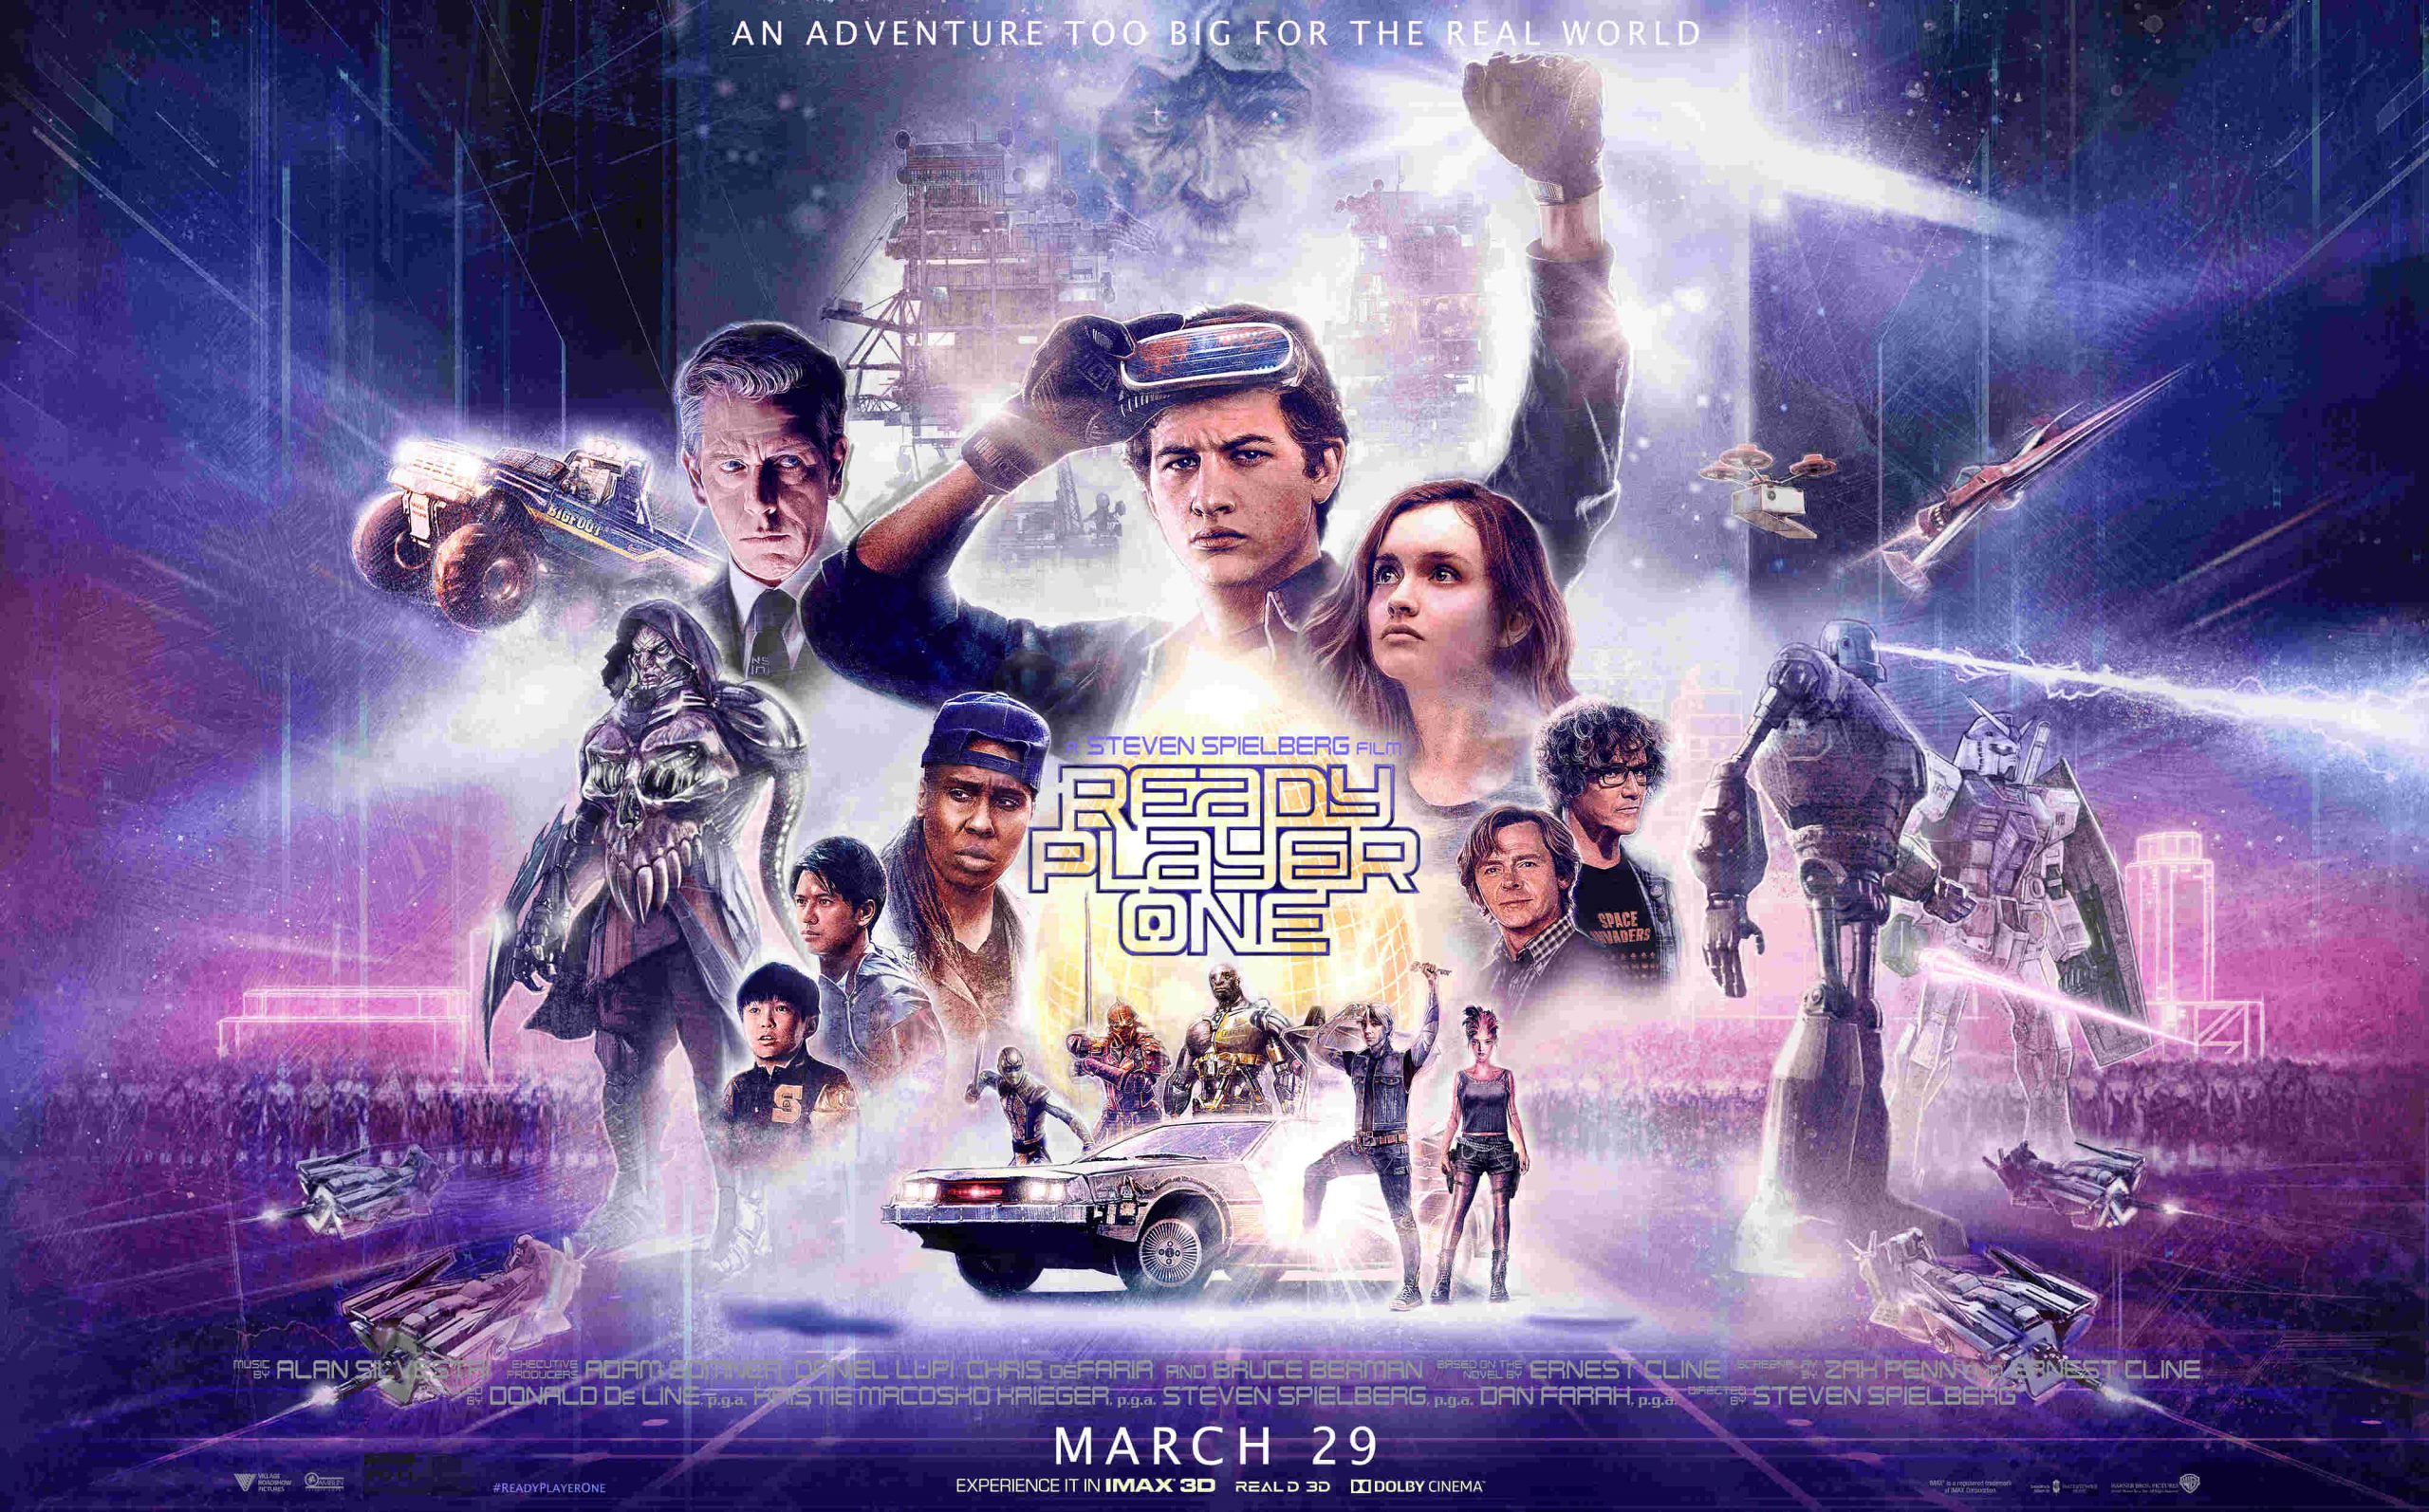 Ready Player One pasa $ 500 millones en la taquilla global